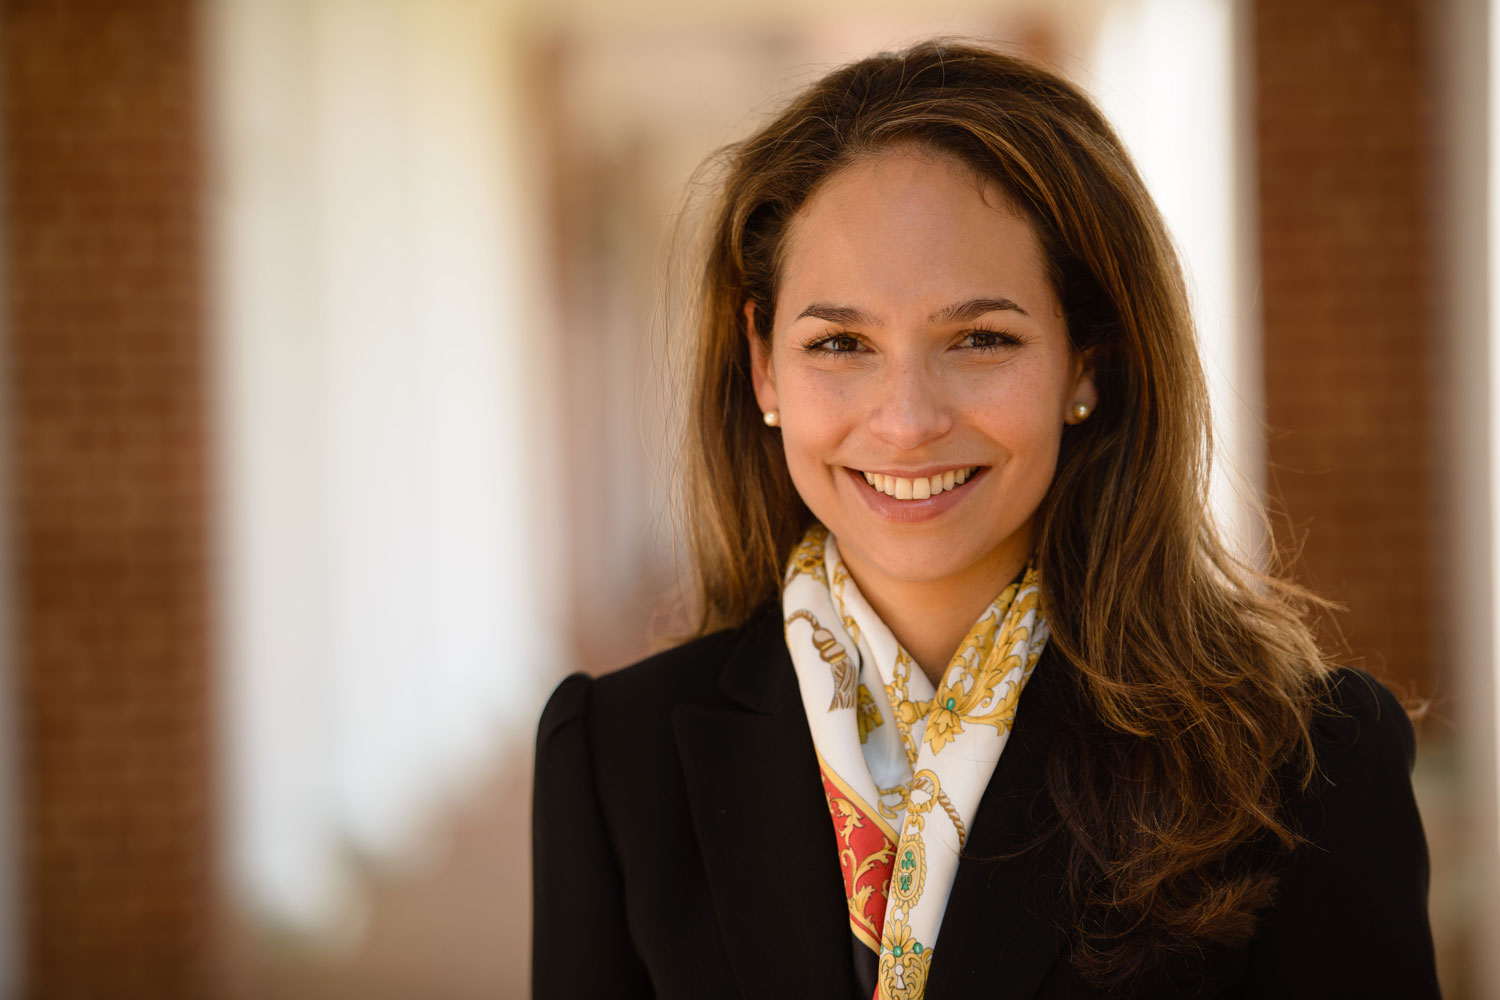 Morela Hernandez directs the Behavioral Research at Darden, or BRAD, lab and focuses on the ethics of leadership.